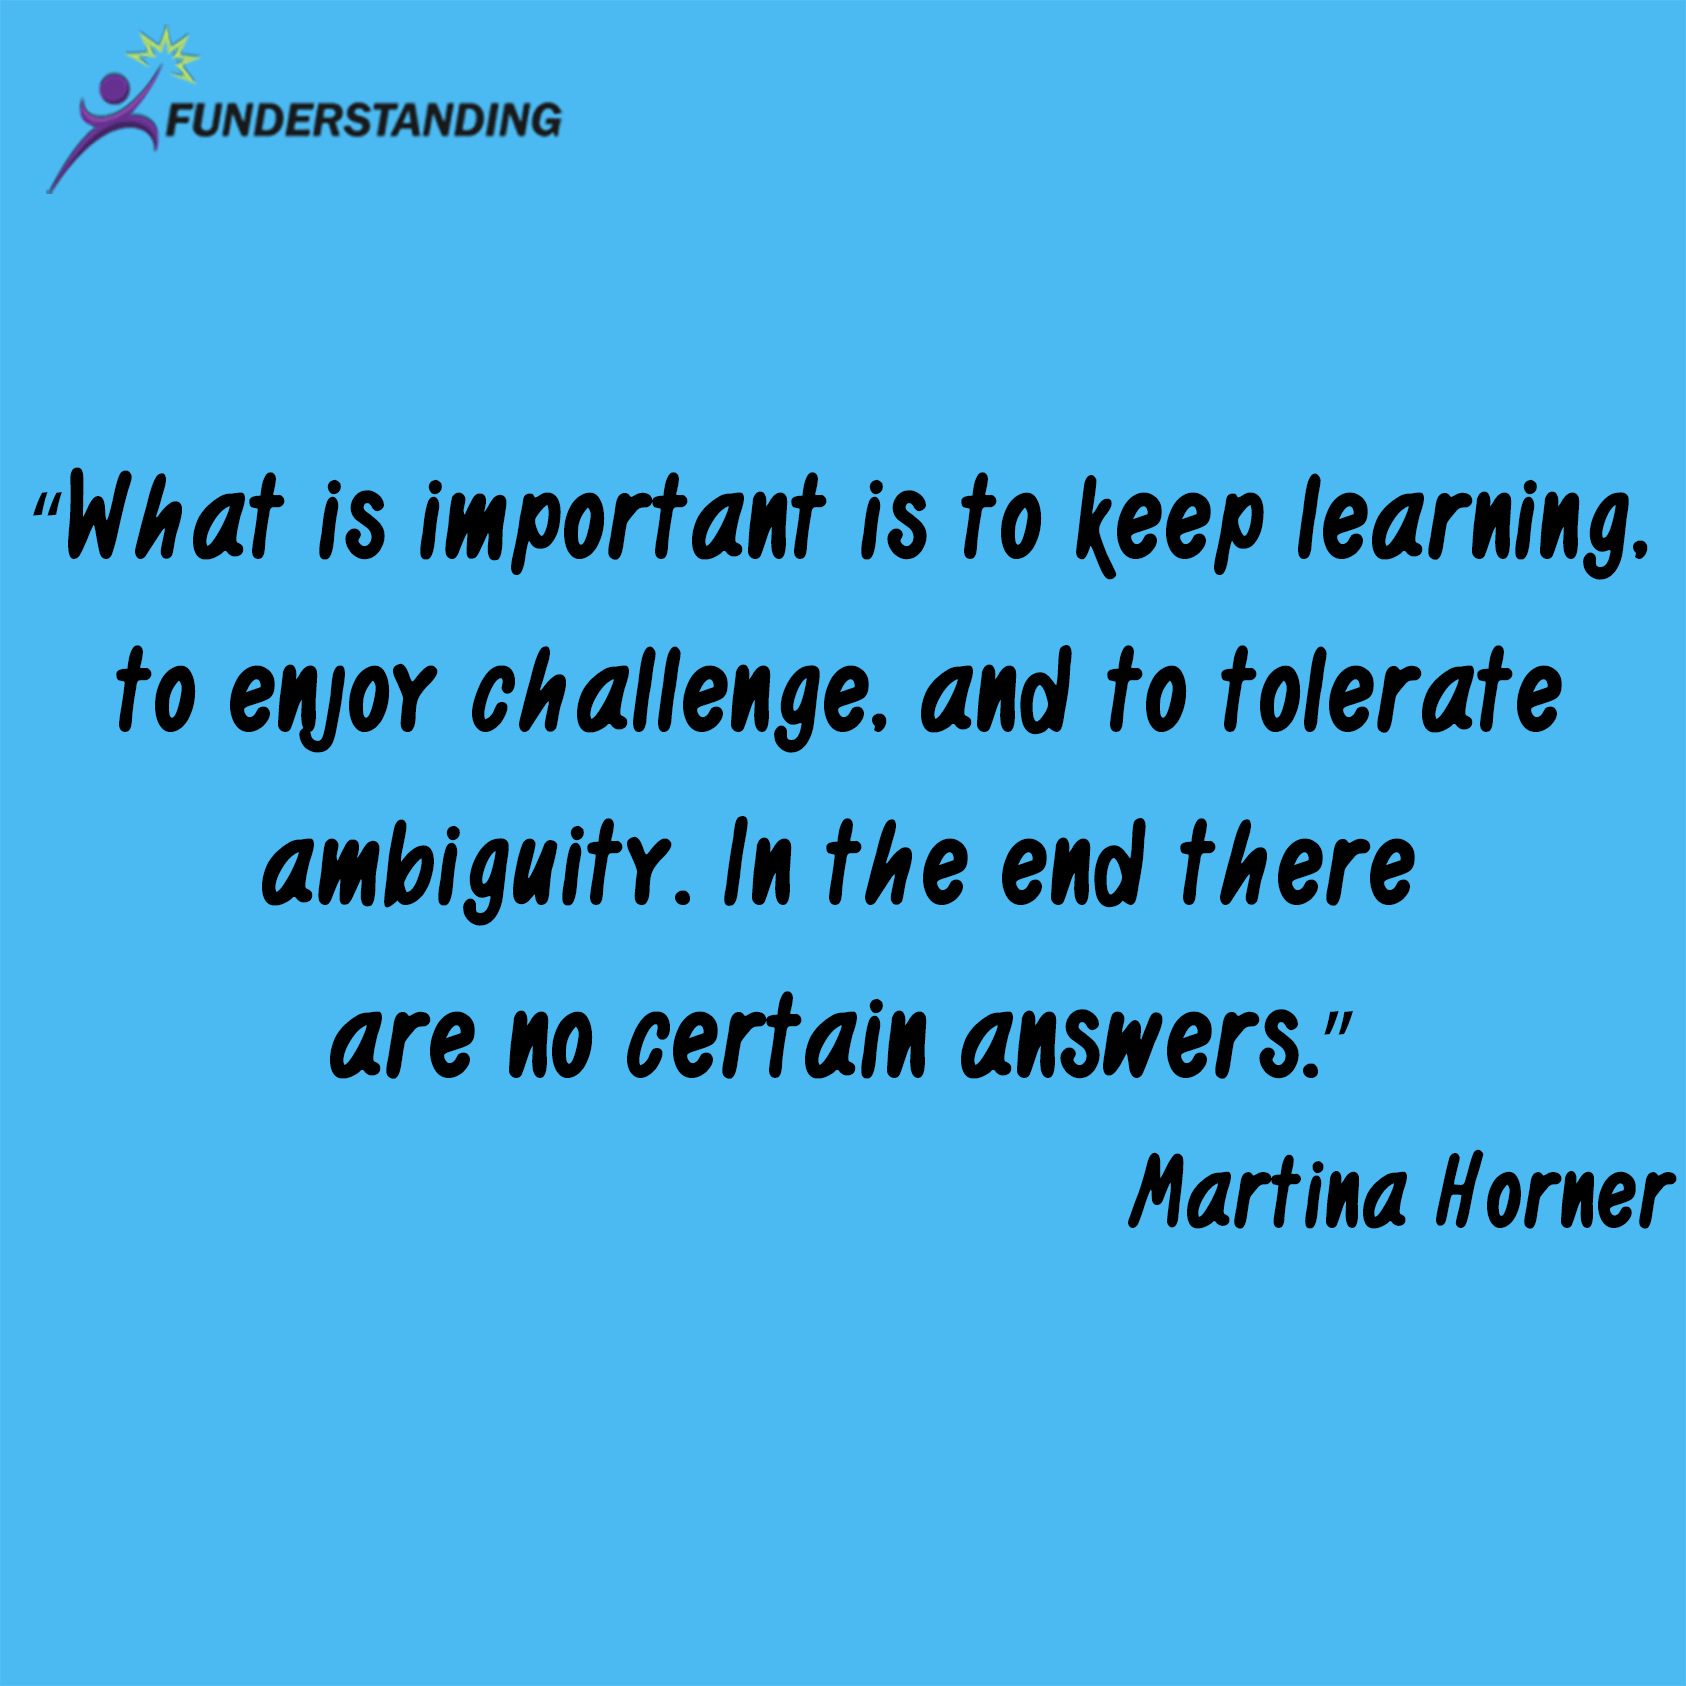 Importance Of Education Quotes Educational Quotes  Funderstanding Education Curriculum And